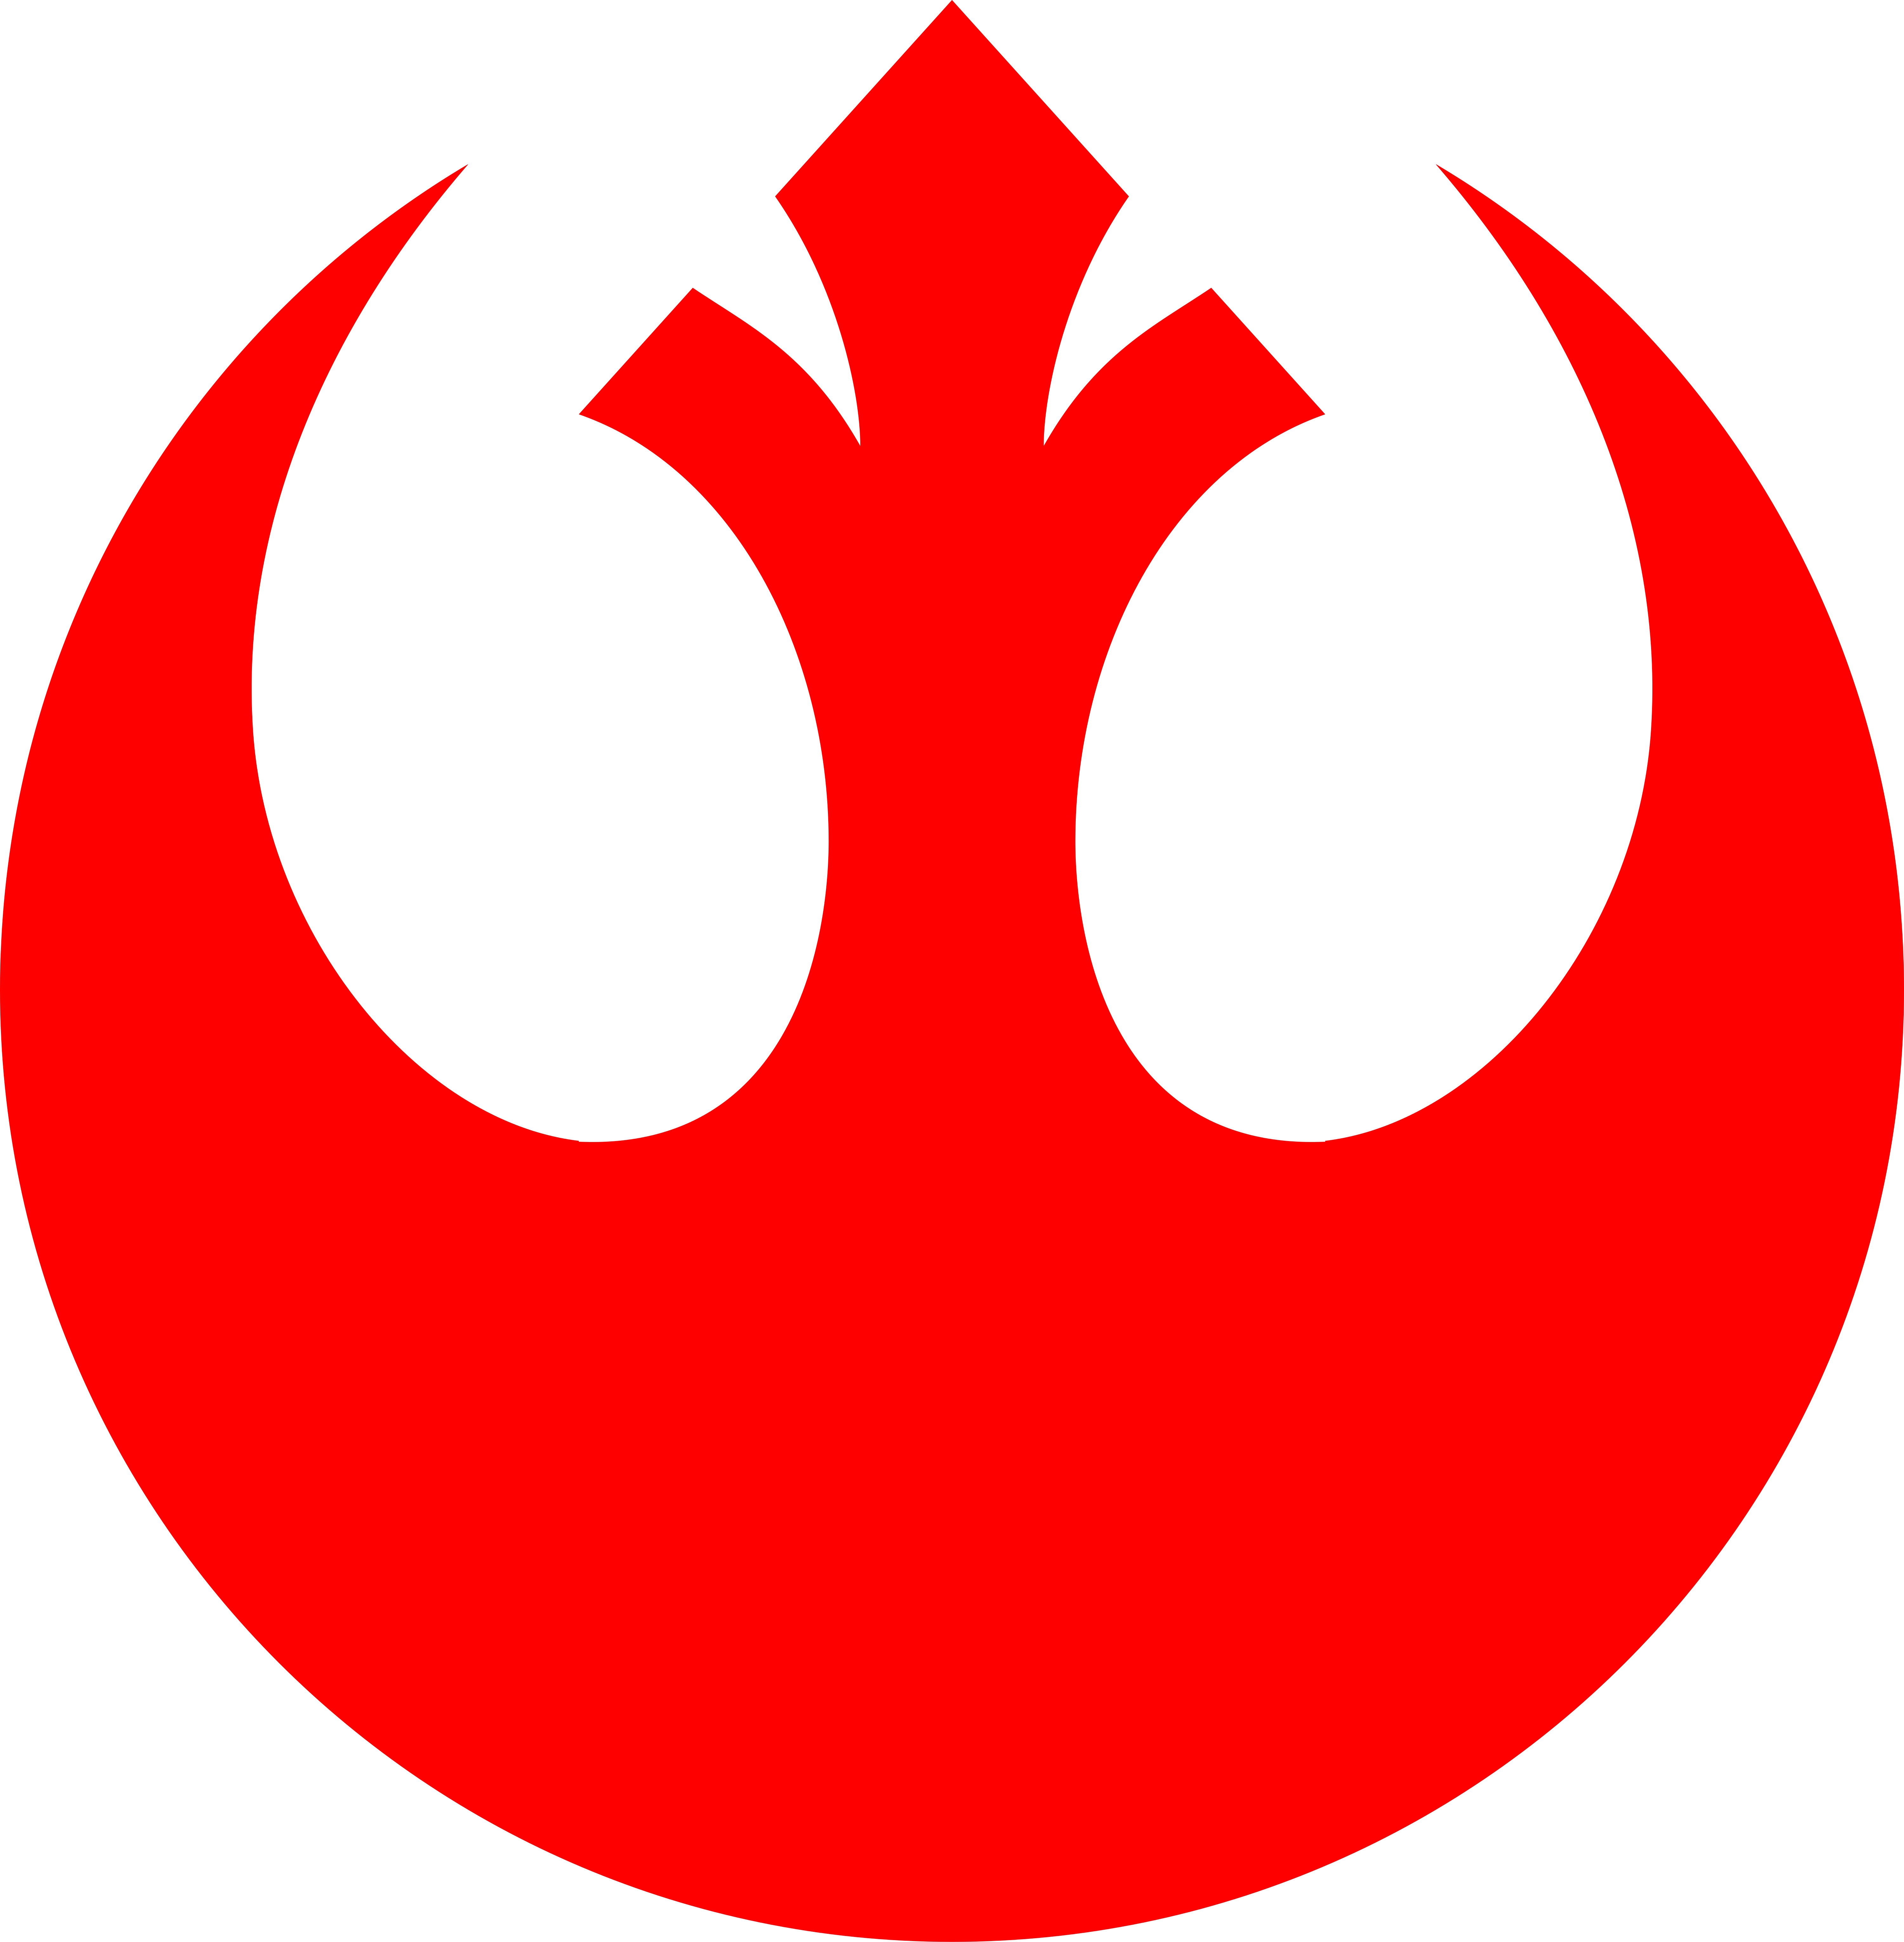 Star wars rebel symbol clipart graphic royalty free stock Image - Rebel Alliance logo.svg.png | Disney Wiki | FANDOM powered ... graphic royalty free stock